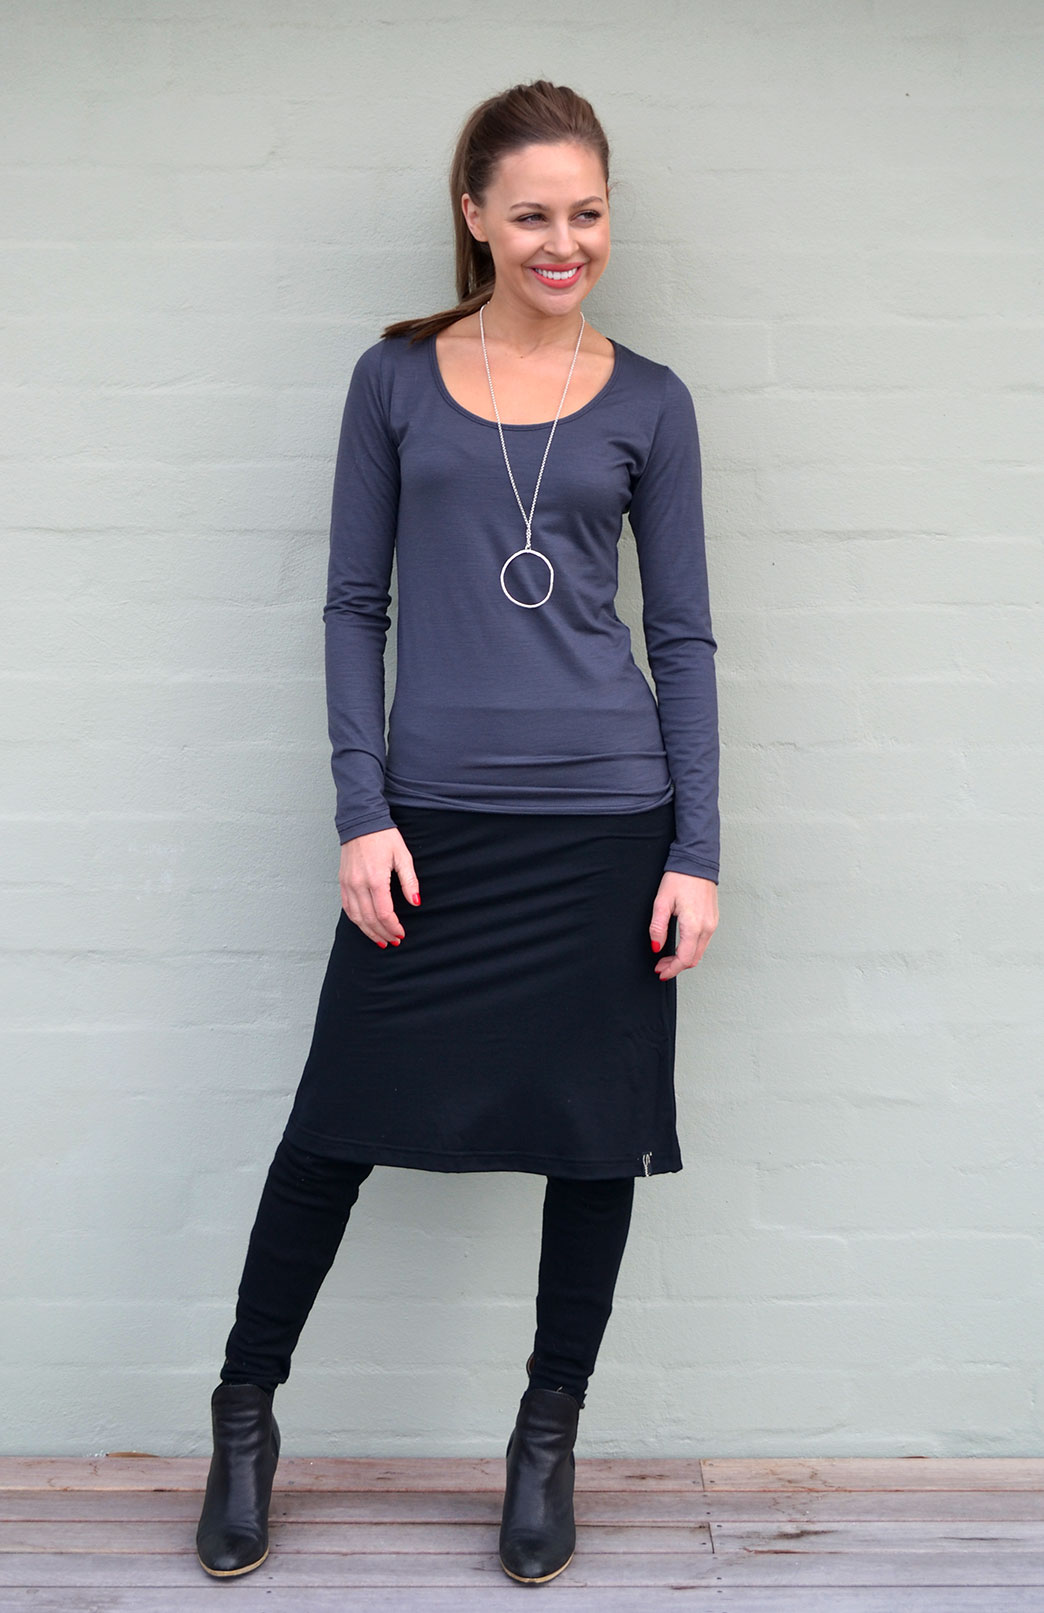 Scoop Neck Top - Plain - Women's Steel Grey Marl Pure Merino Wool Long Sleeved Layering Top with Scoop Neckline - Smitten Merino Tasmania Australia